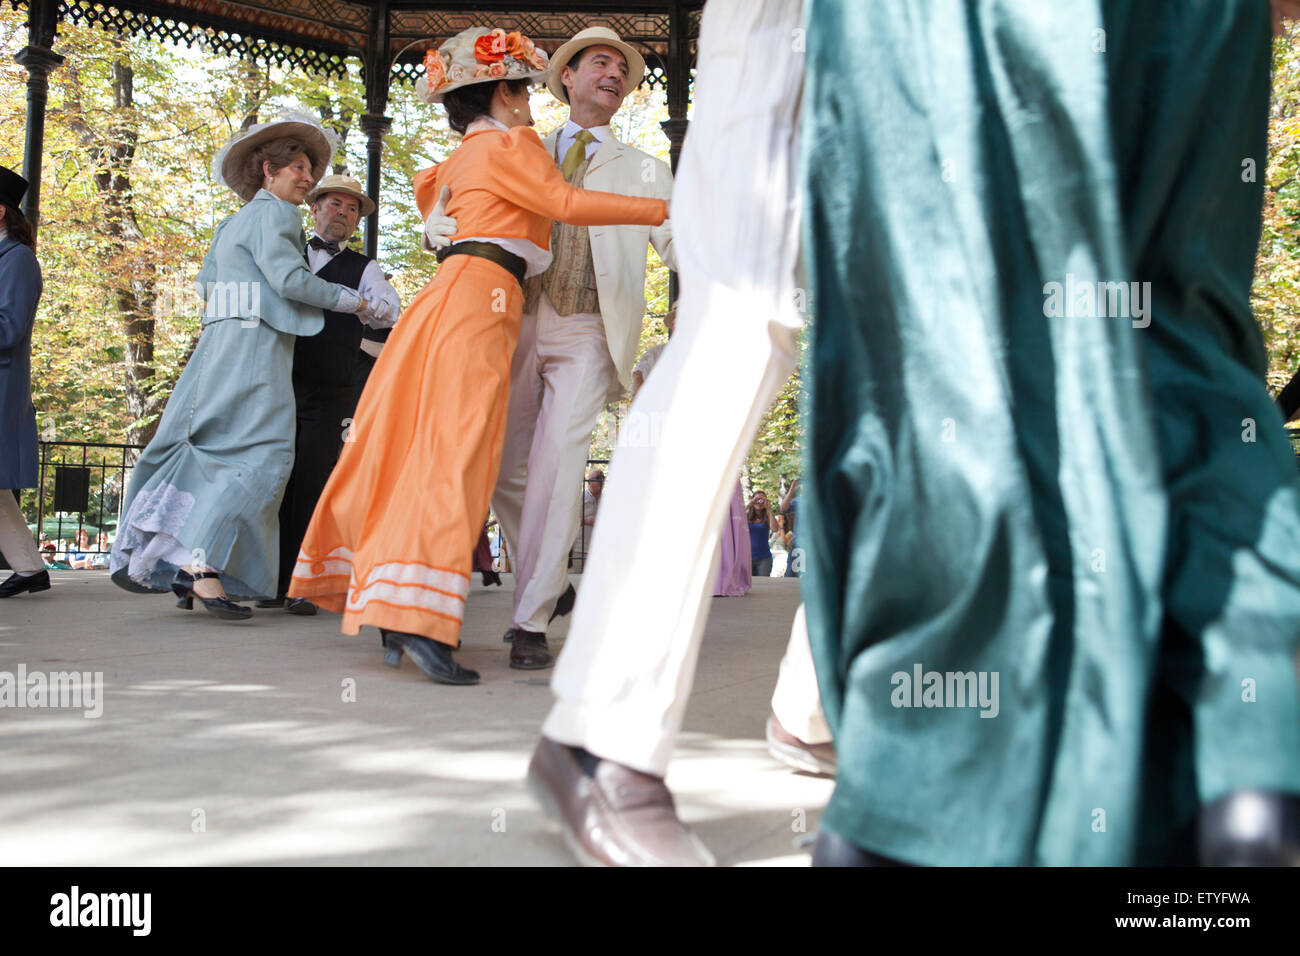 Old fashioned dance at the Jardins de Luxembourg in Paris. Afternoon show for tourists. France - Stock Image